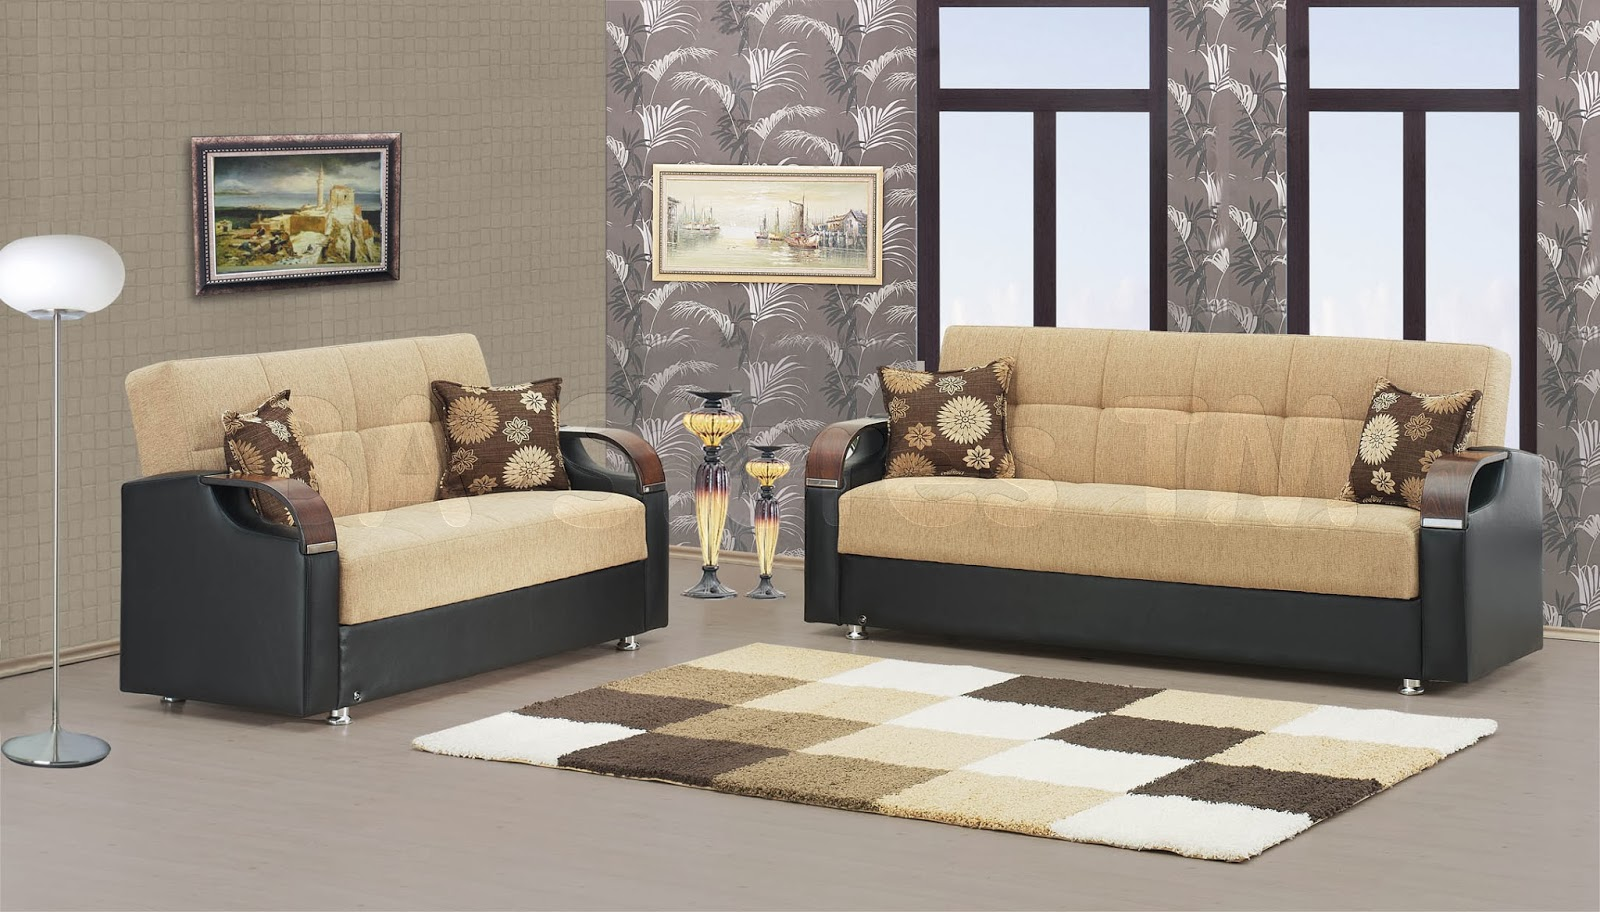 sofa set design sofa set design sofa set design